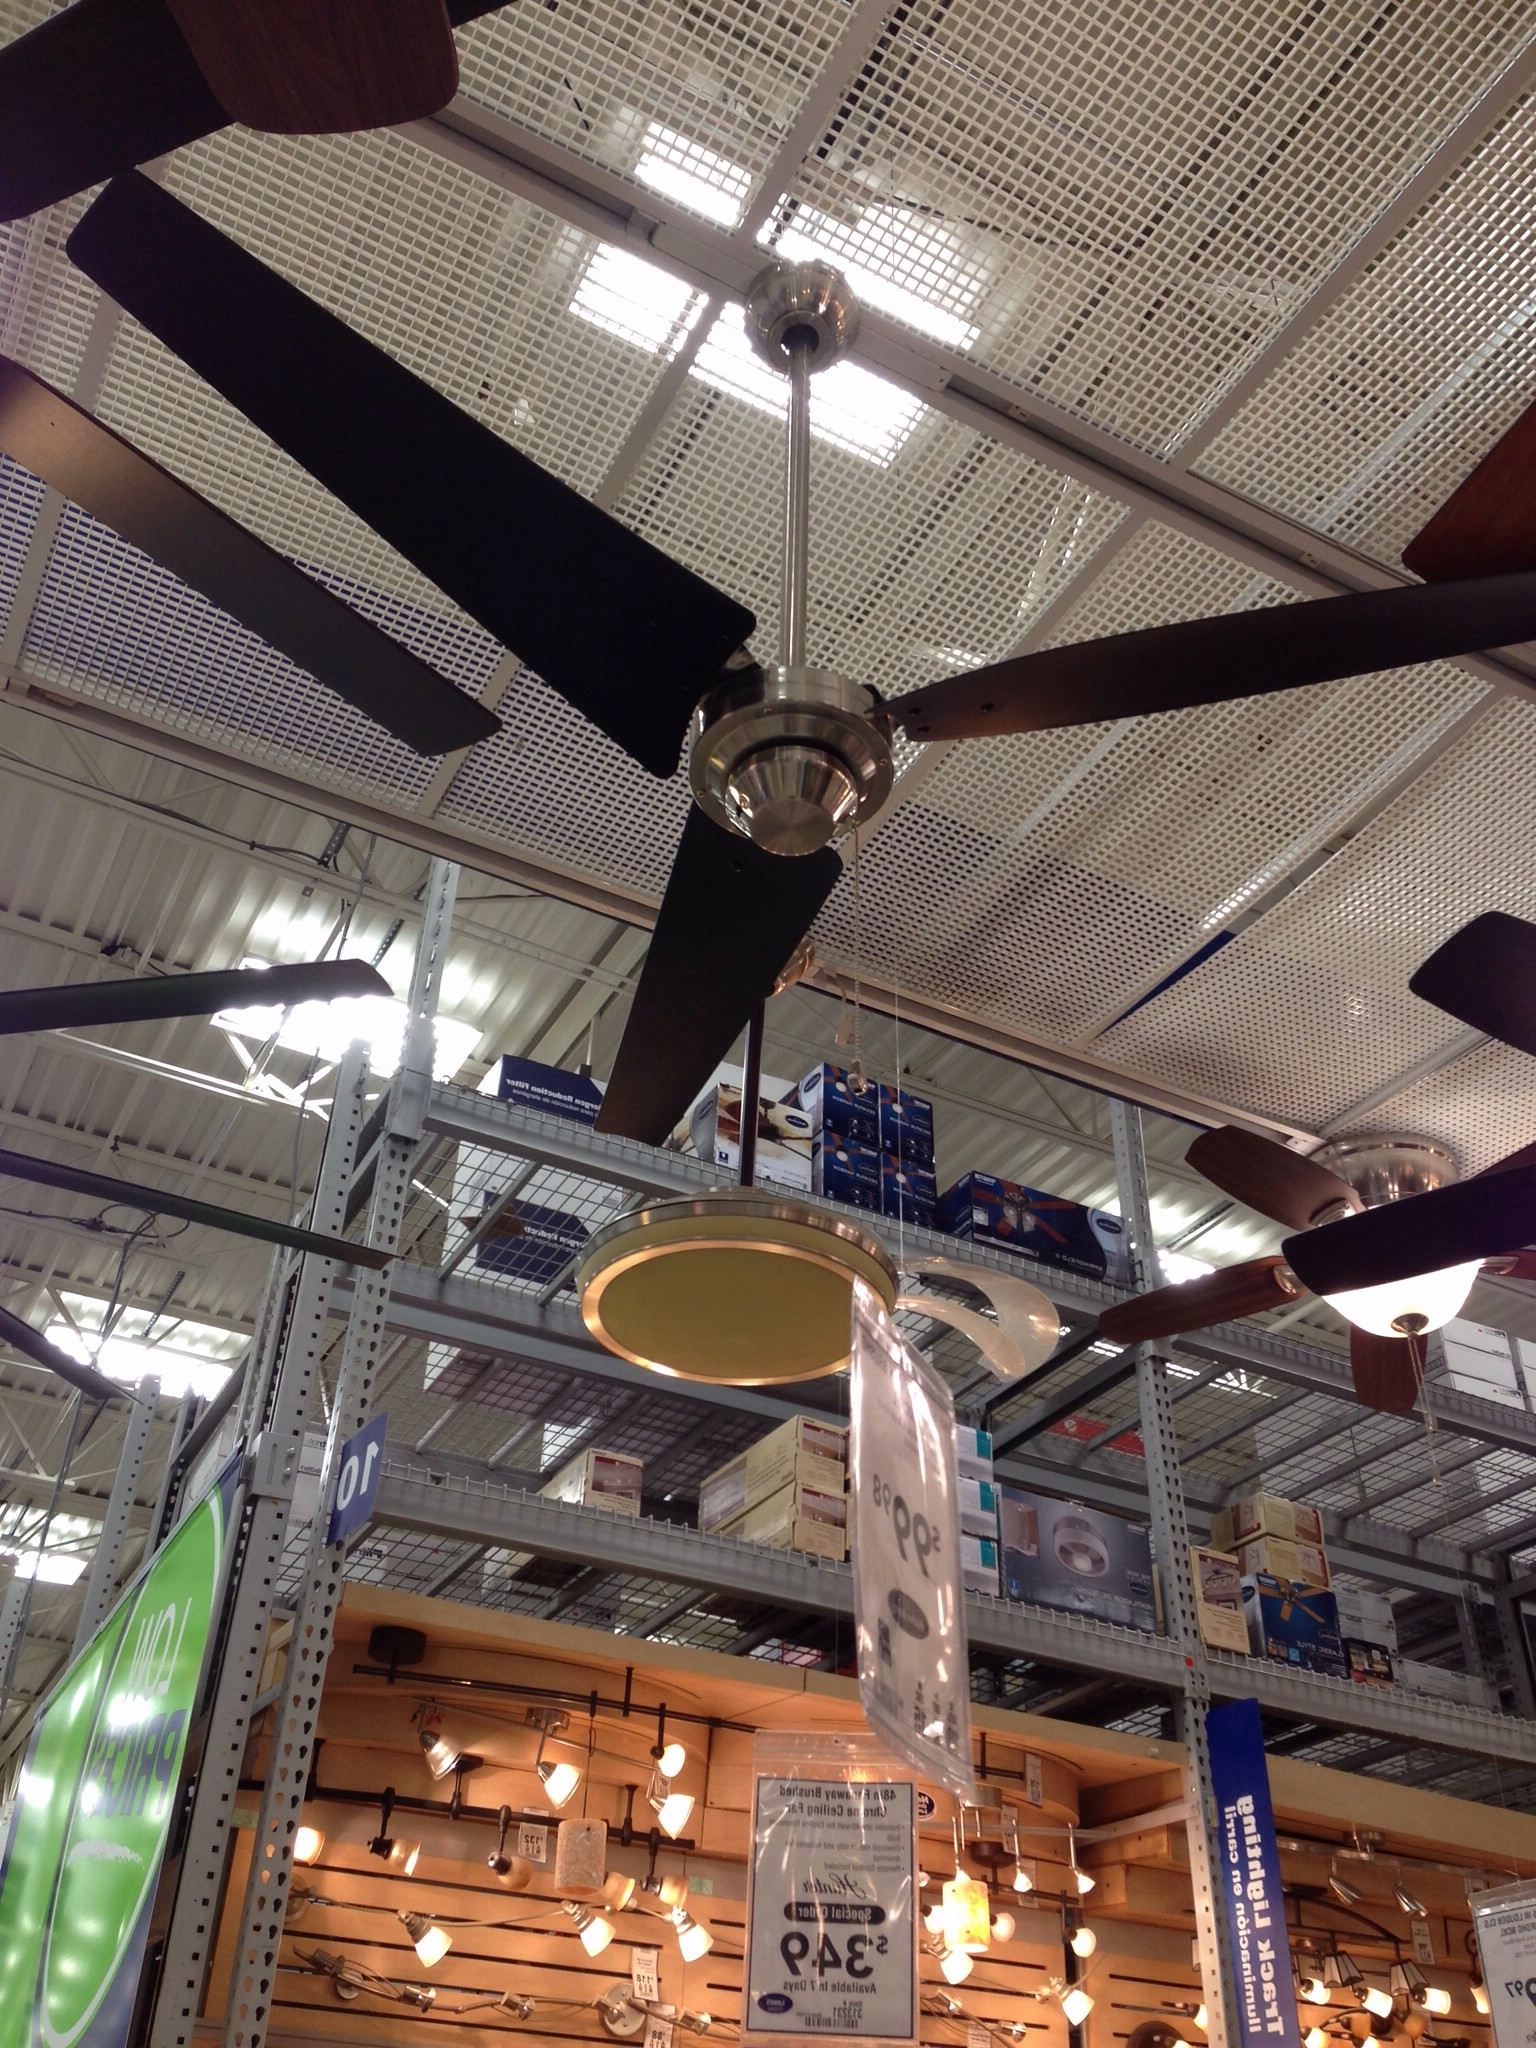 Menards Outdoor Ceiling Fans Lovely Lamps Menards Ceiling Fans Pertaining To Trendy Outdoor Ceiling Fans At Menards (View 19 of 20)